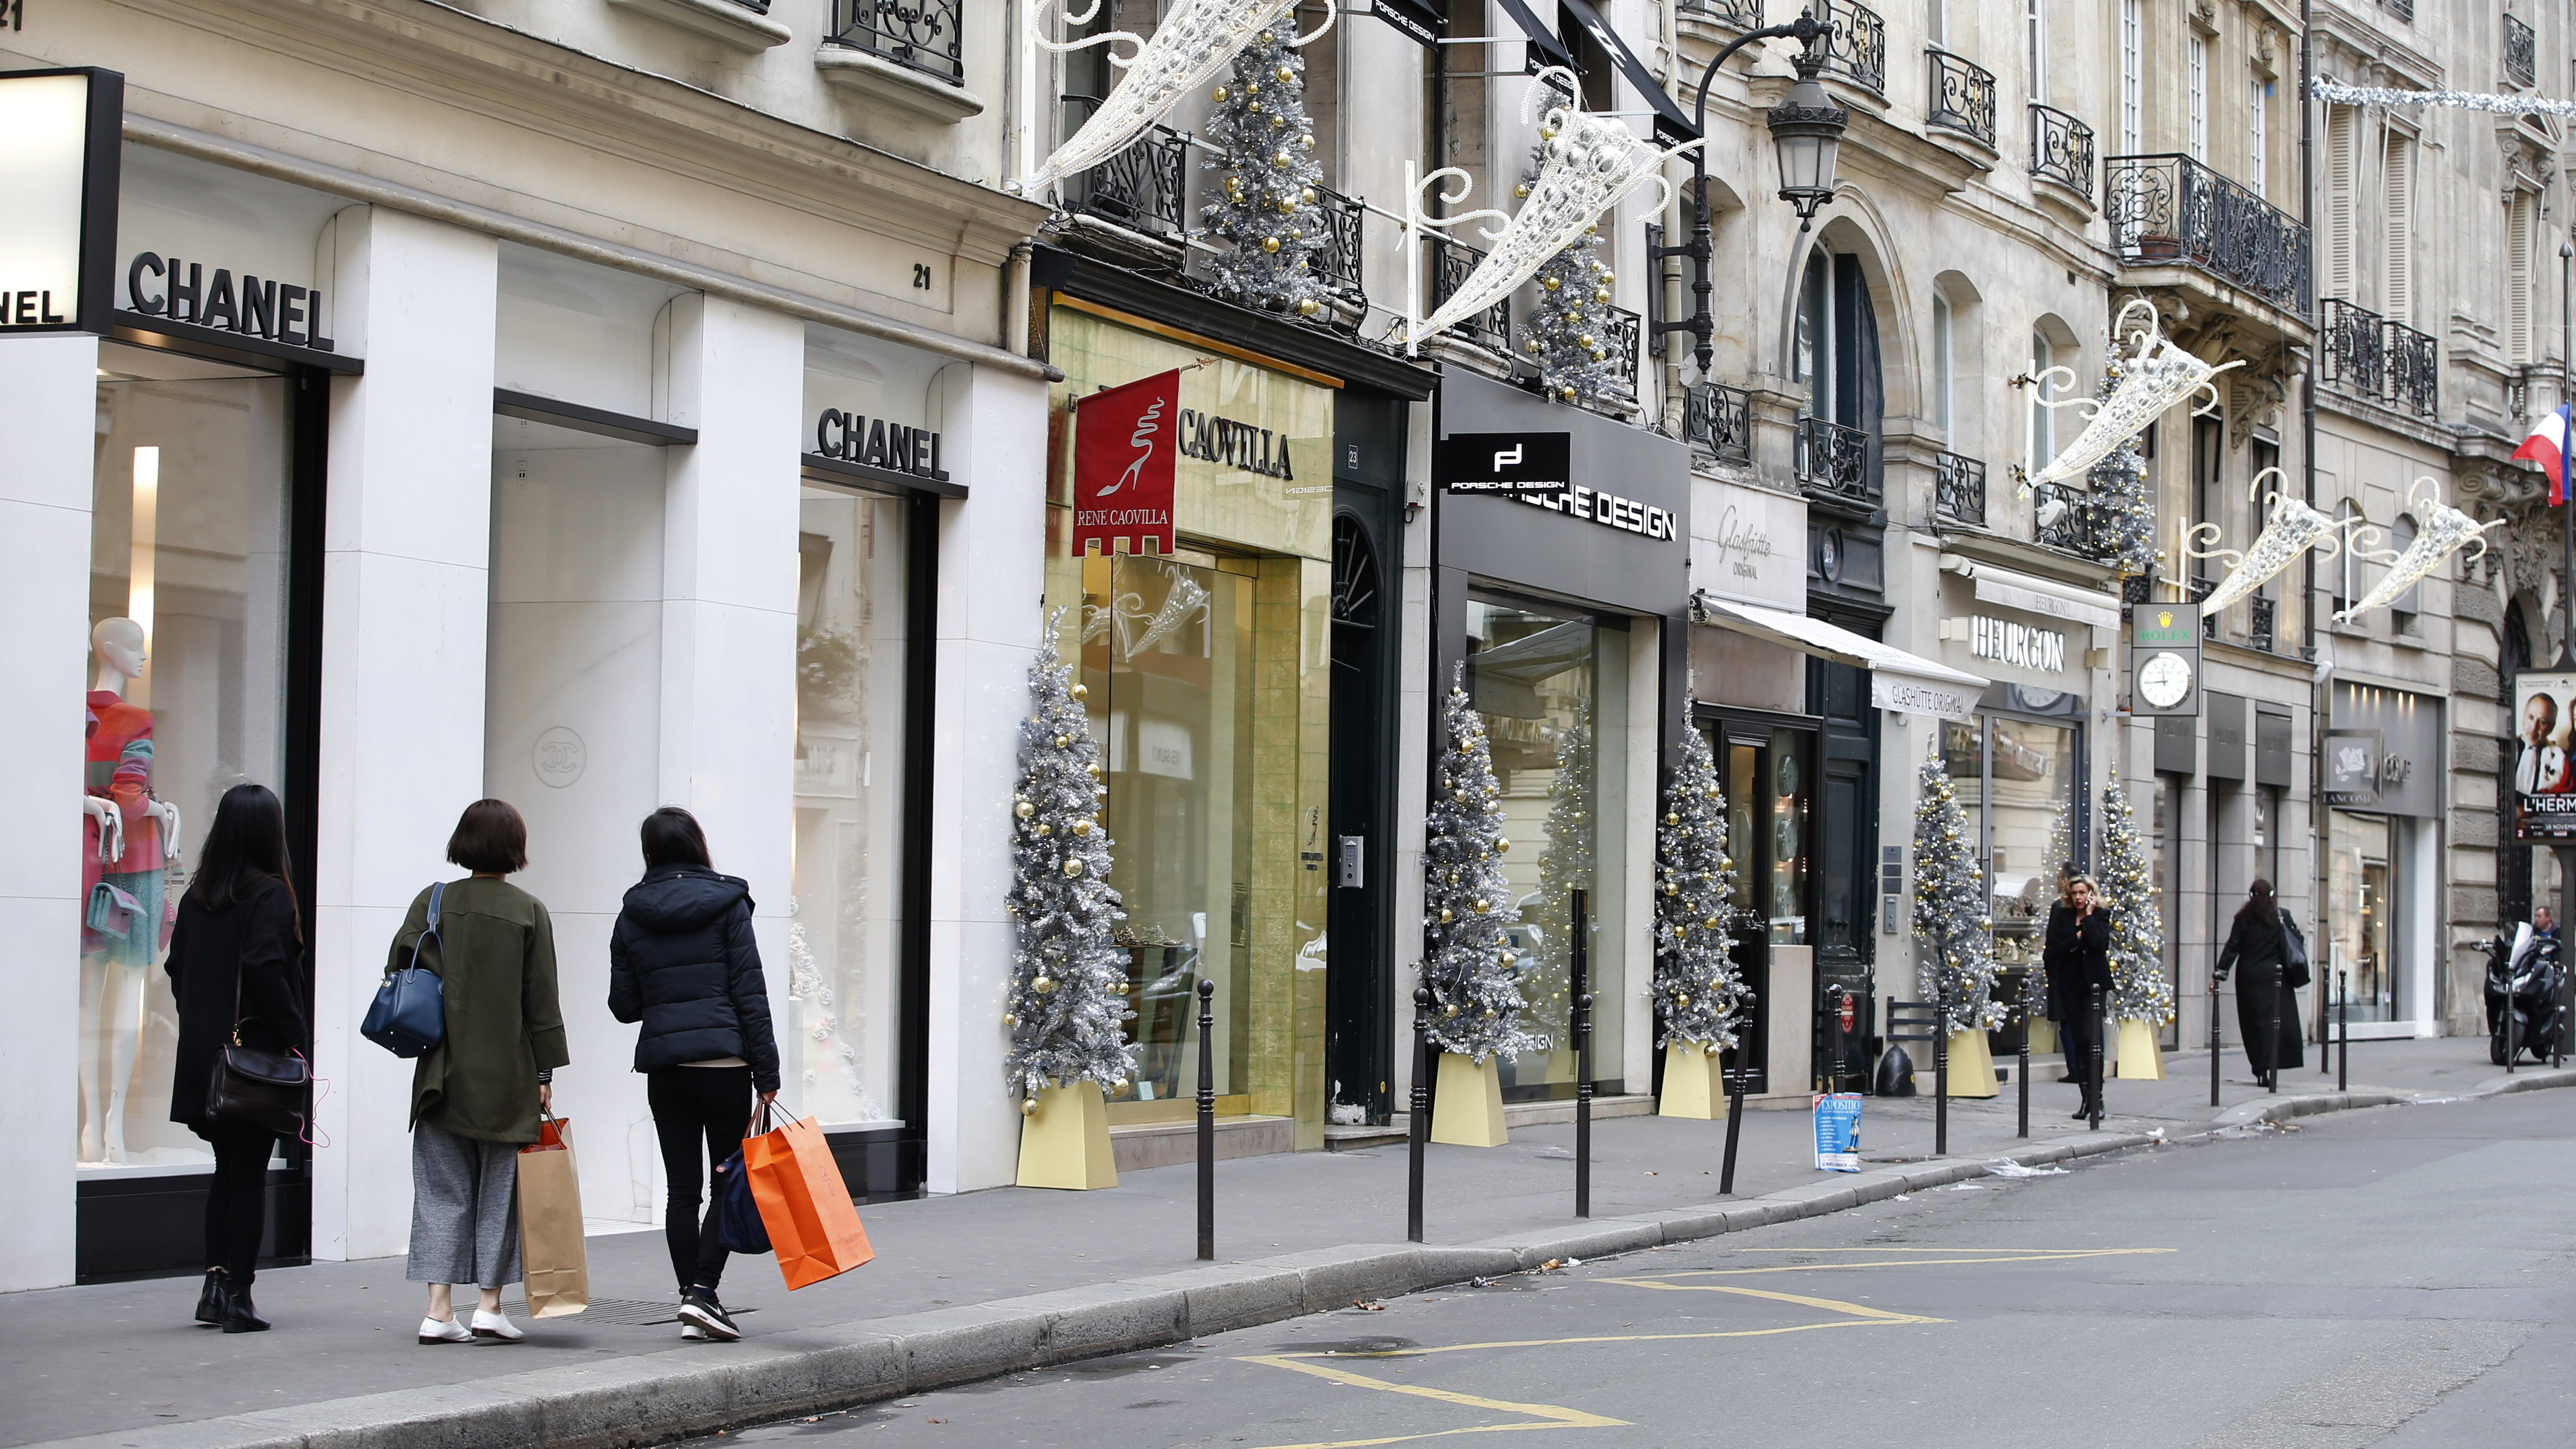 Customers stand on an uncrowded sidewalk in front of shops selling luxury goods Rue du Faubourg Saint-Honore in Paris after last Friday's series of deadly attacks in the French capital, France, November 18, 2015.